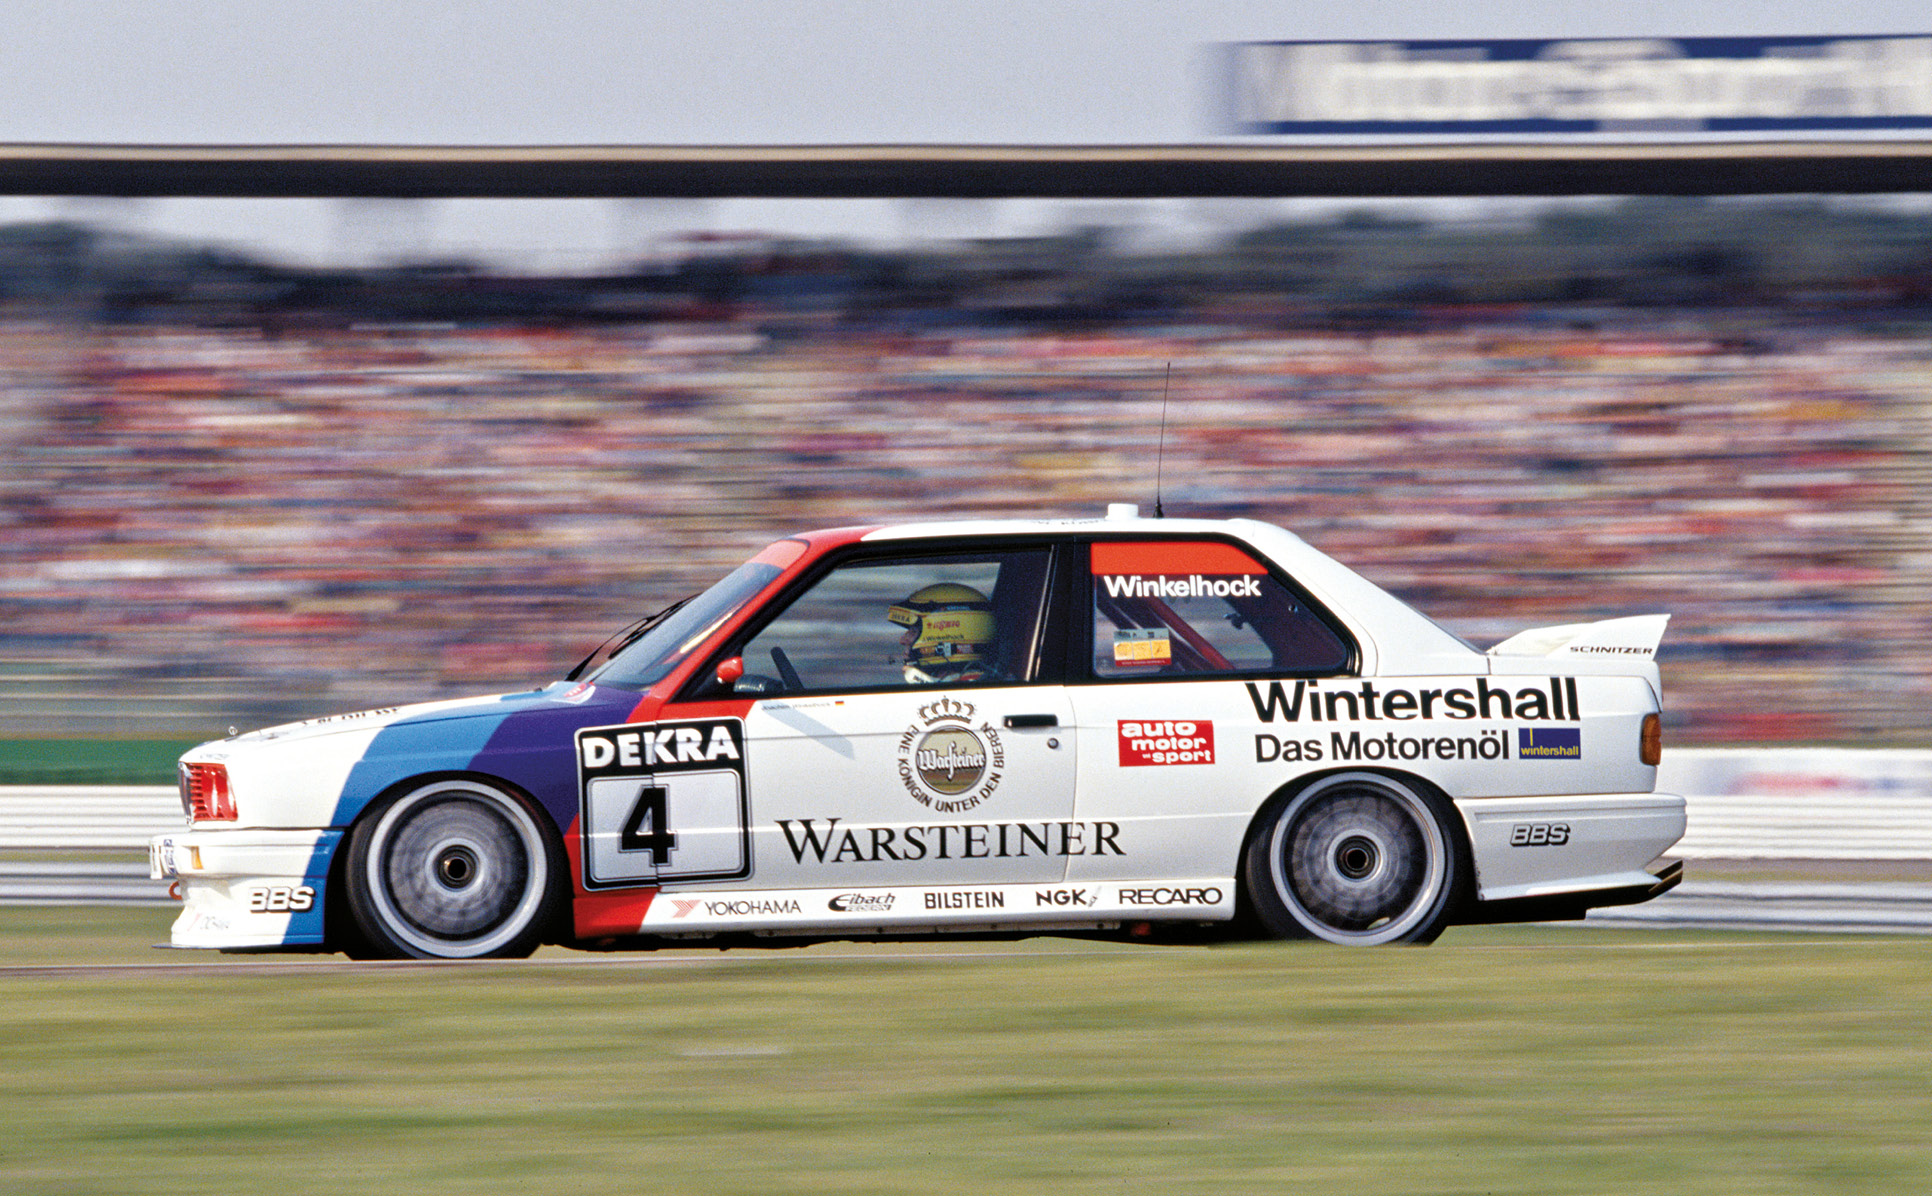 Jo Winkelhock spent 14 years racing in German touring cars and says the BMW M3 is his pick of the bunch